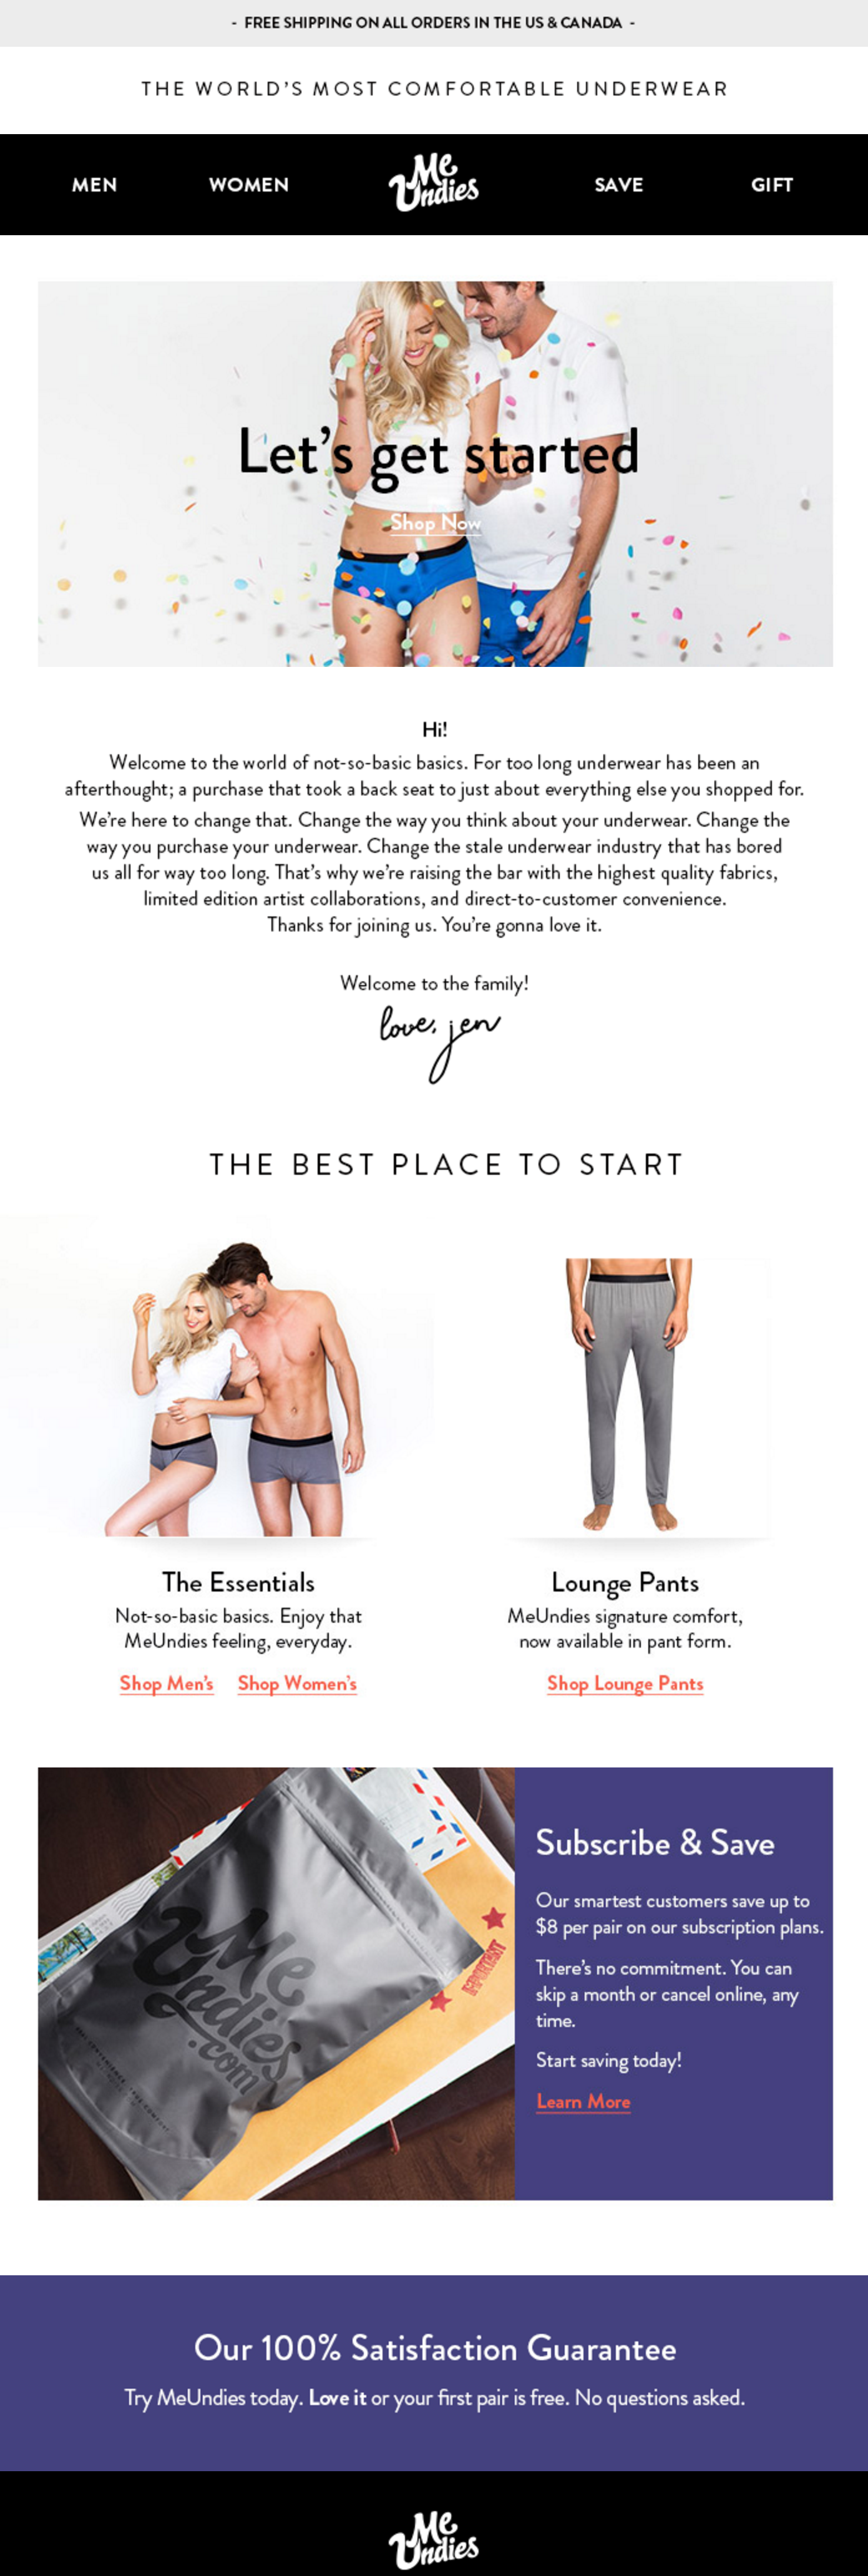 Email welcoming new subscribers - MeUndies.